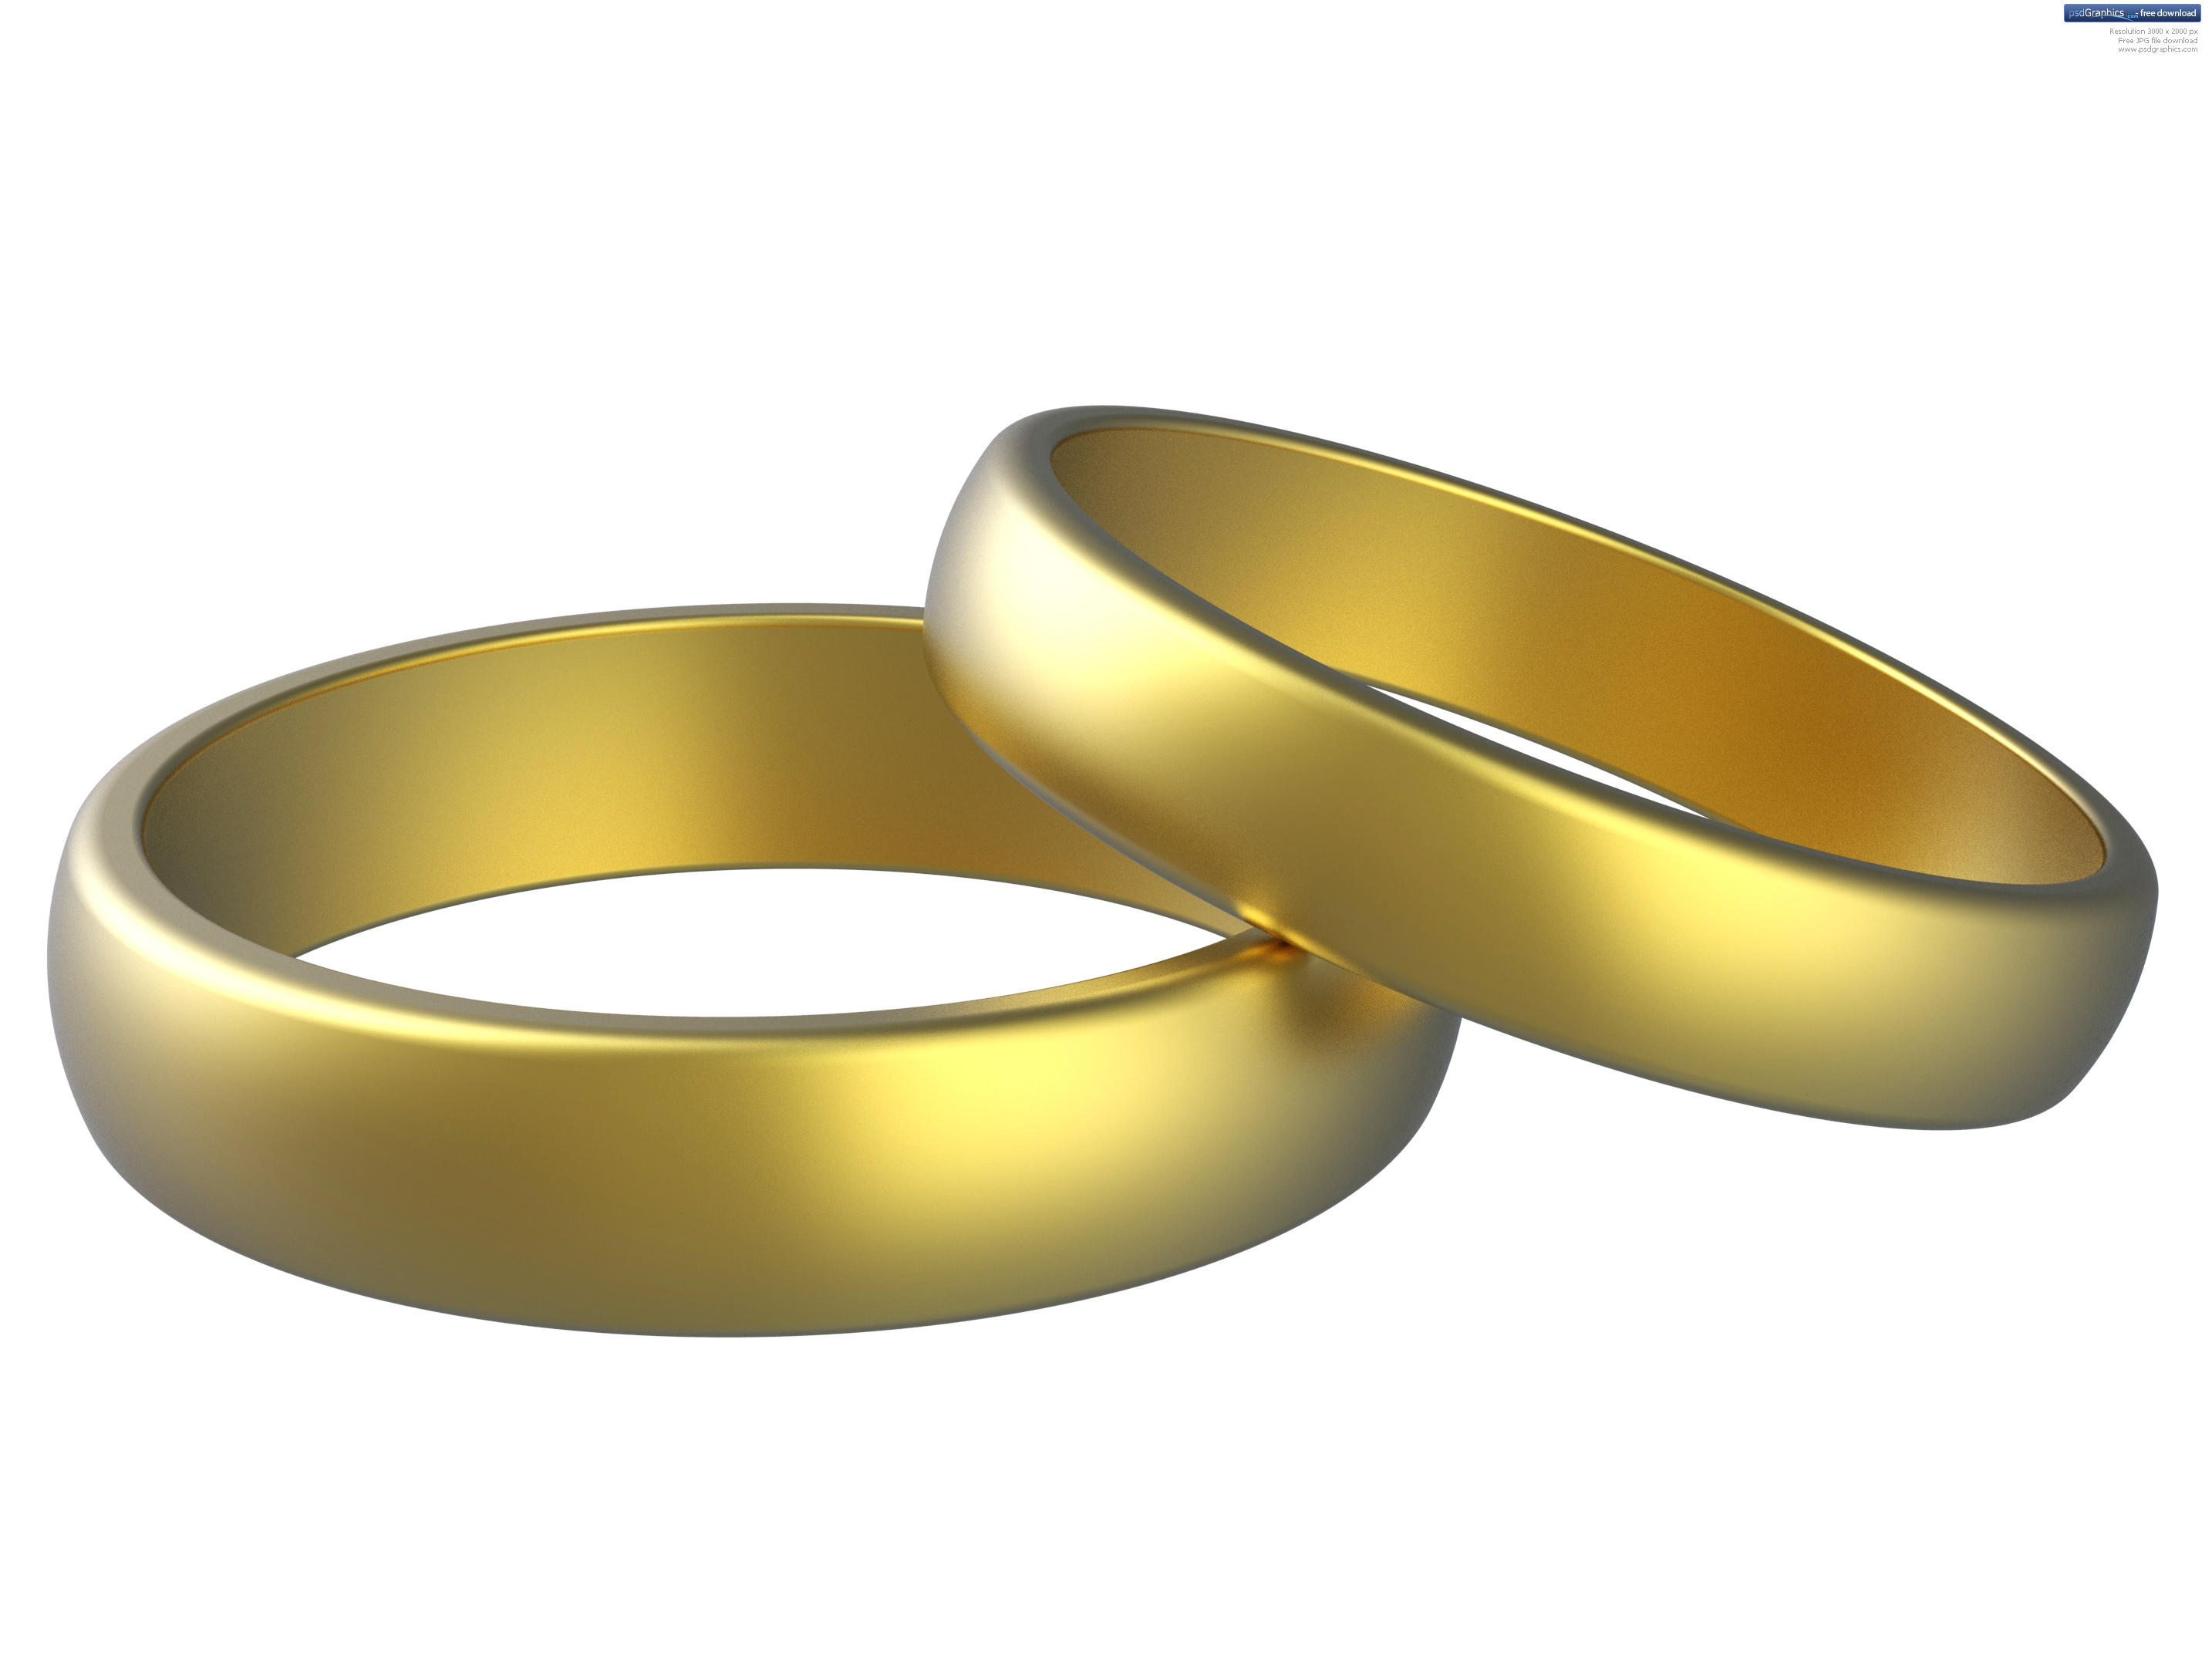 Linked Wedding Rings Clipart Free Images 8 Gclipart